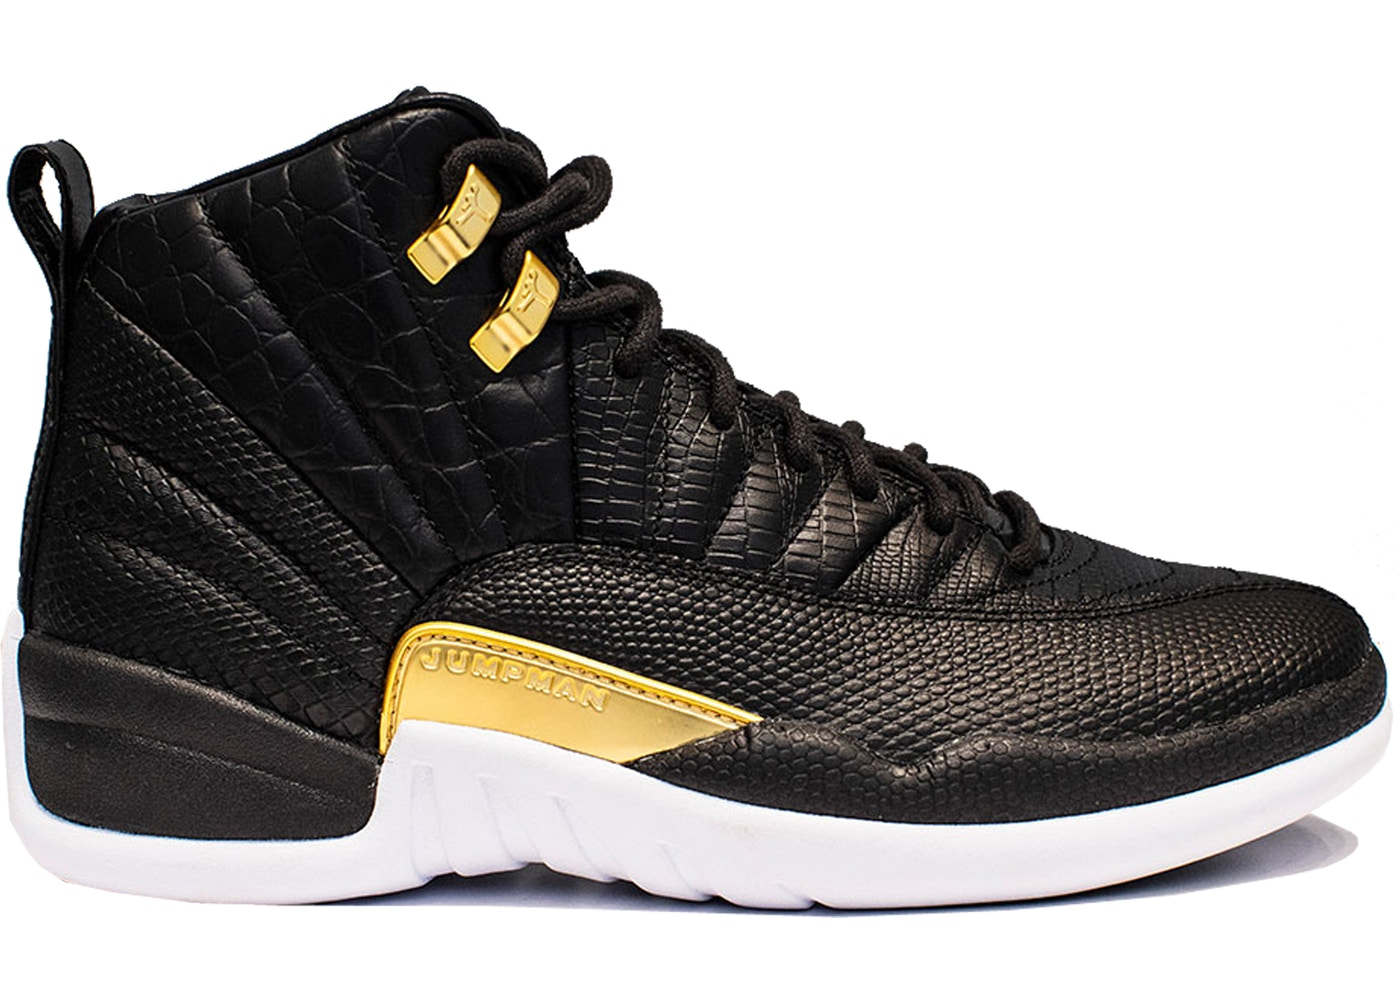 59578669786e Buy Air Jordan 12 Shoes   Deadstock Sneakers